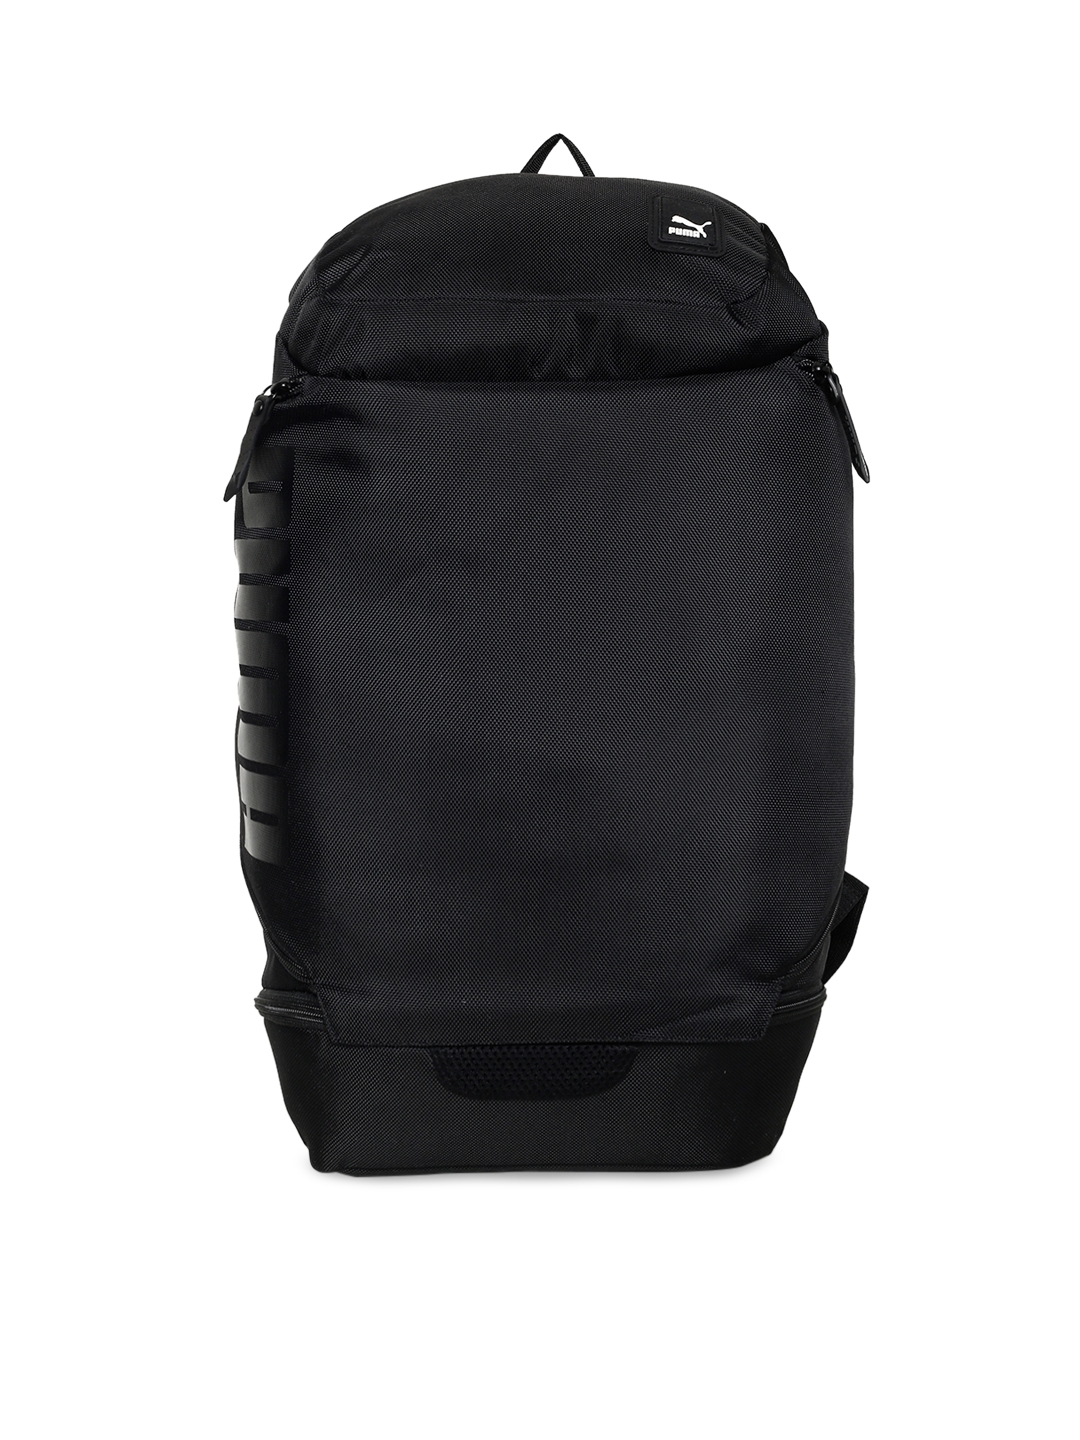 54d140f2b6 Buy Puma Unisex Black Solid Evo Block Backpack - Backpacks for ...